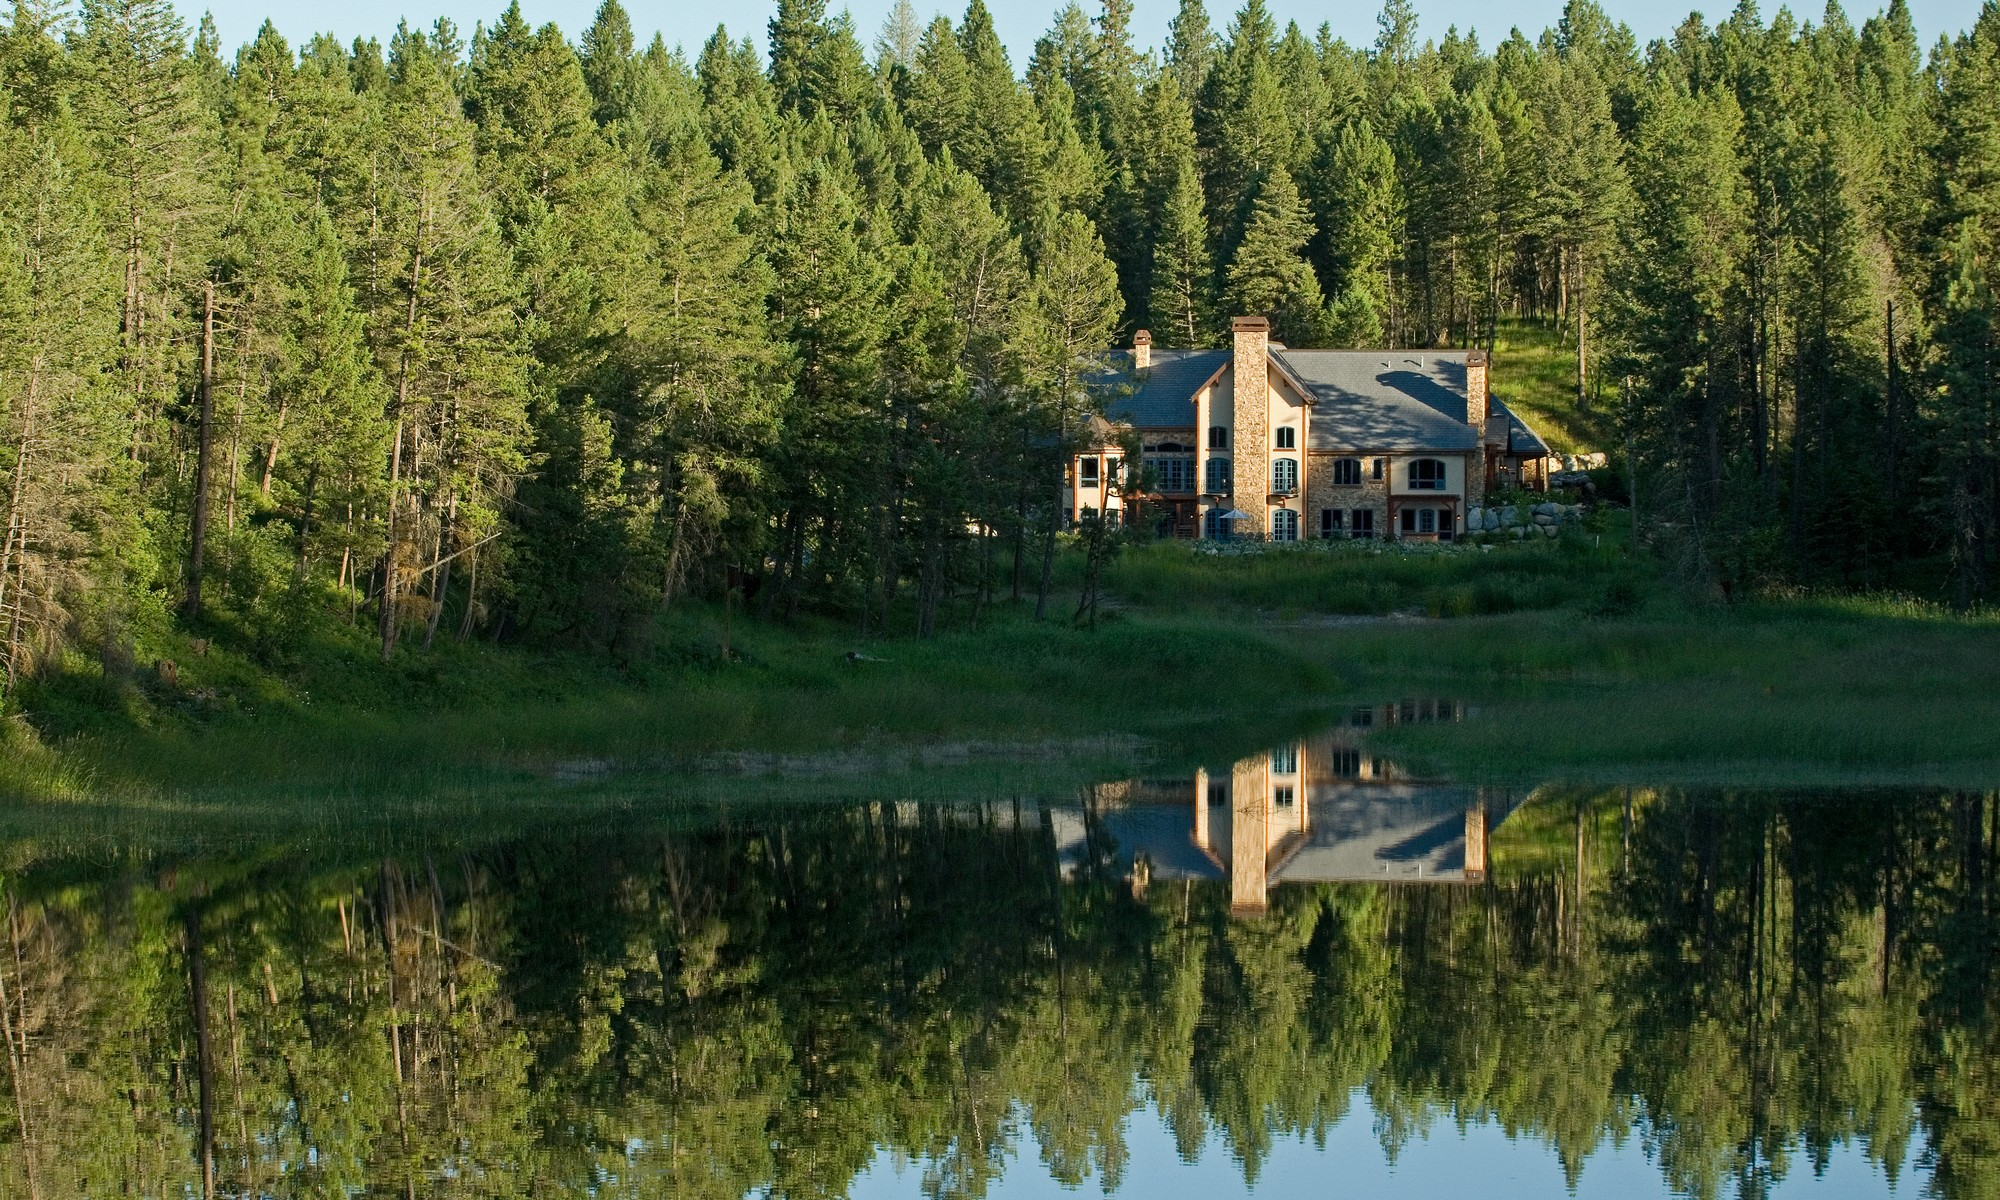 Maison unifamiliale pour l Vente à Private Lake Estate 715 Parker Lakes Road Bigfork, Montana 59911 États-Unis